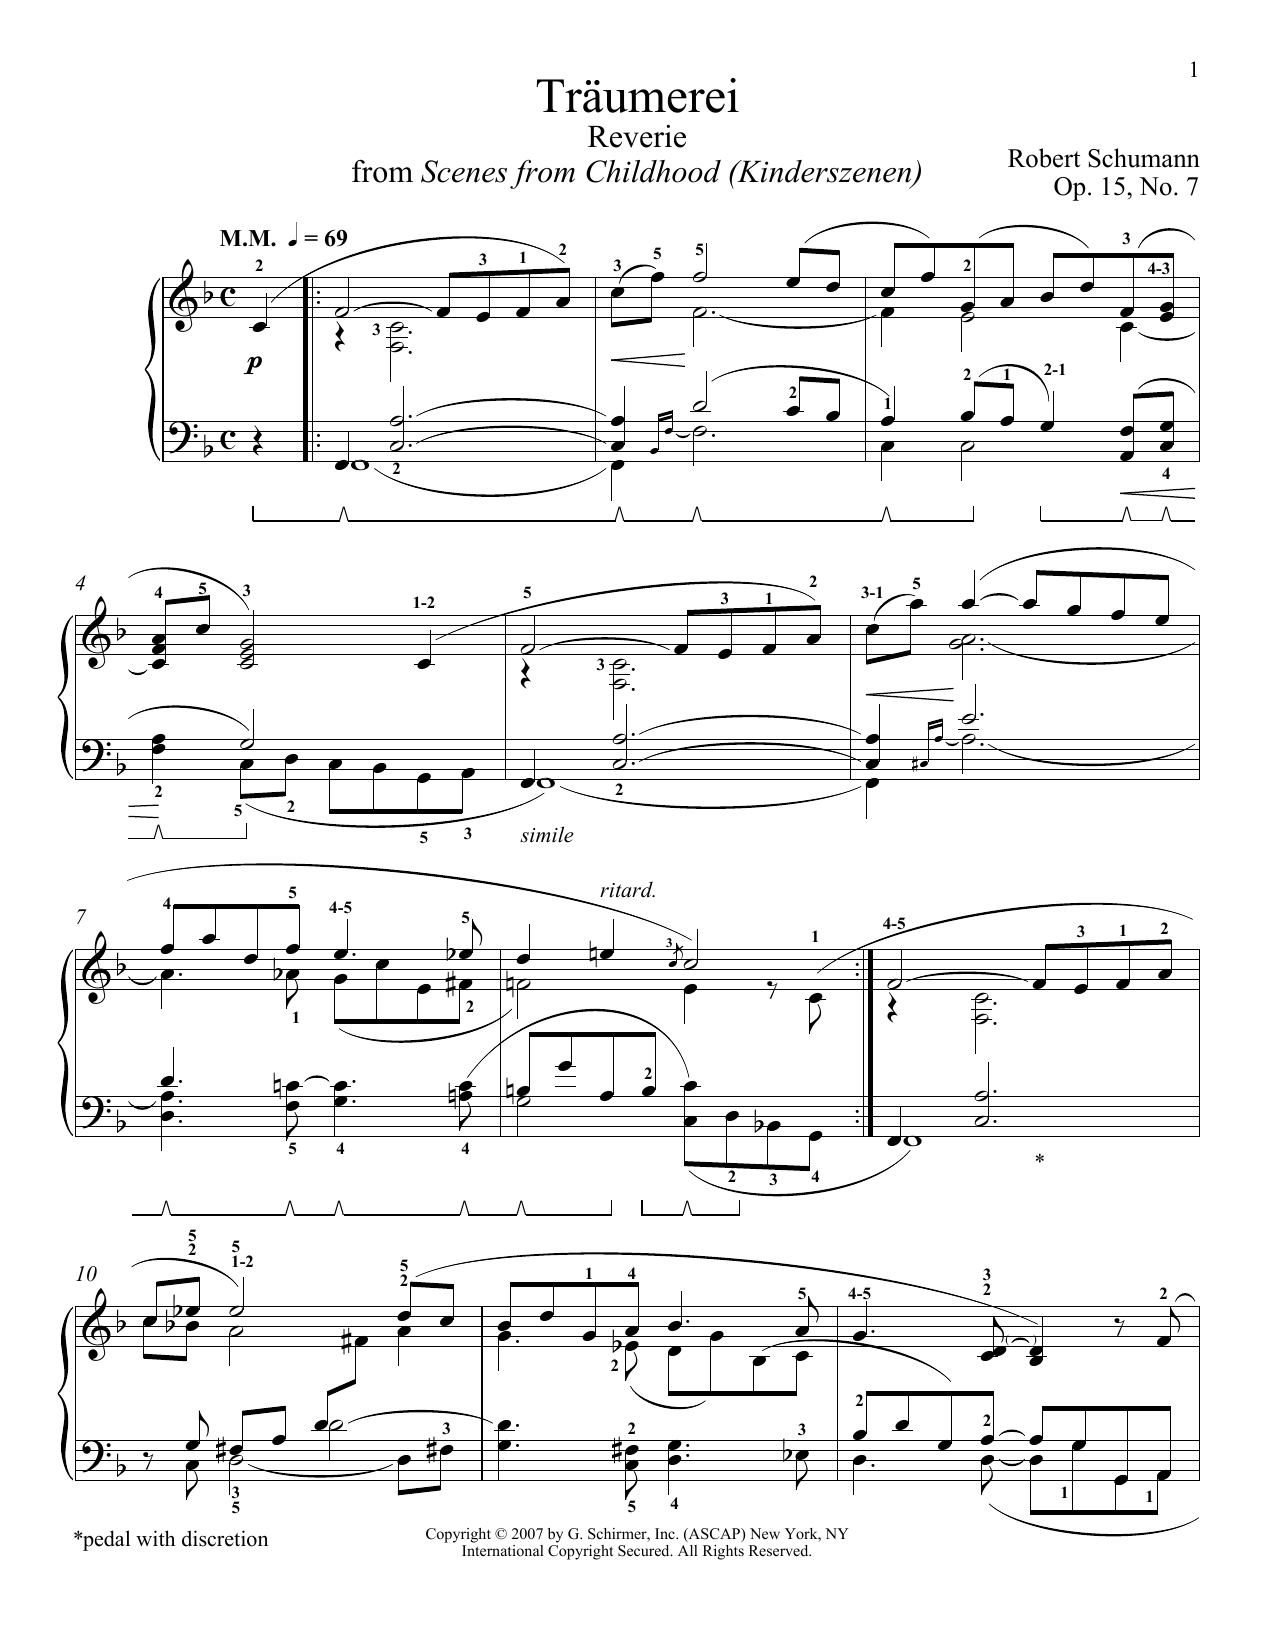 Download Robert Schumann 'Traumerei' Digital Sheet Music Notes & Chords and start playing in minutes